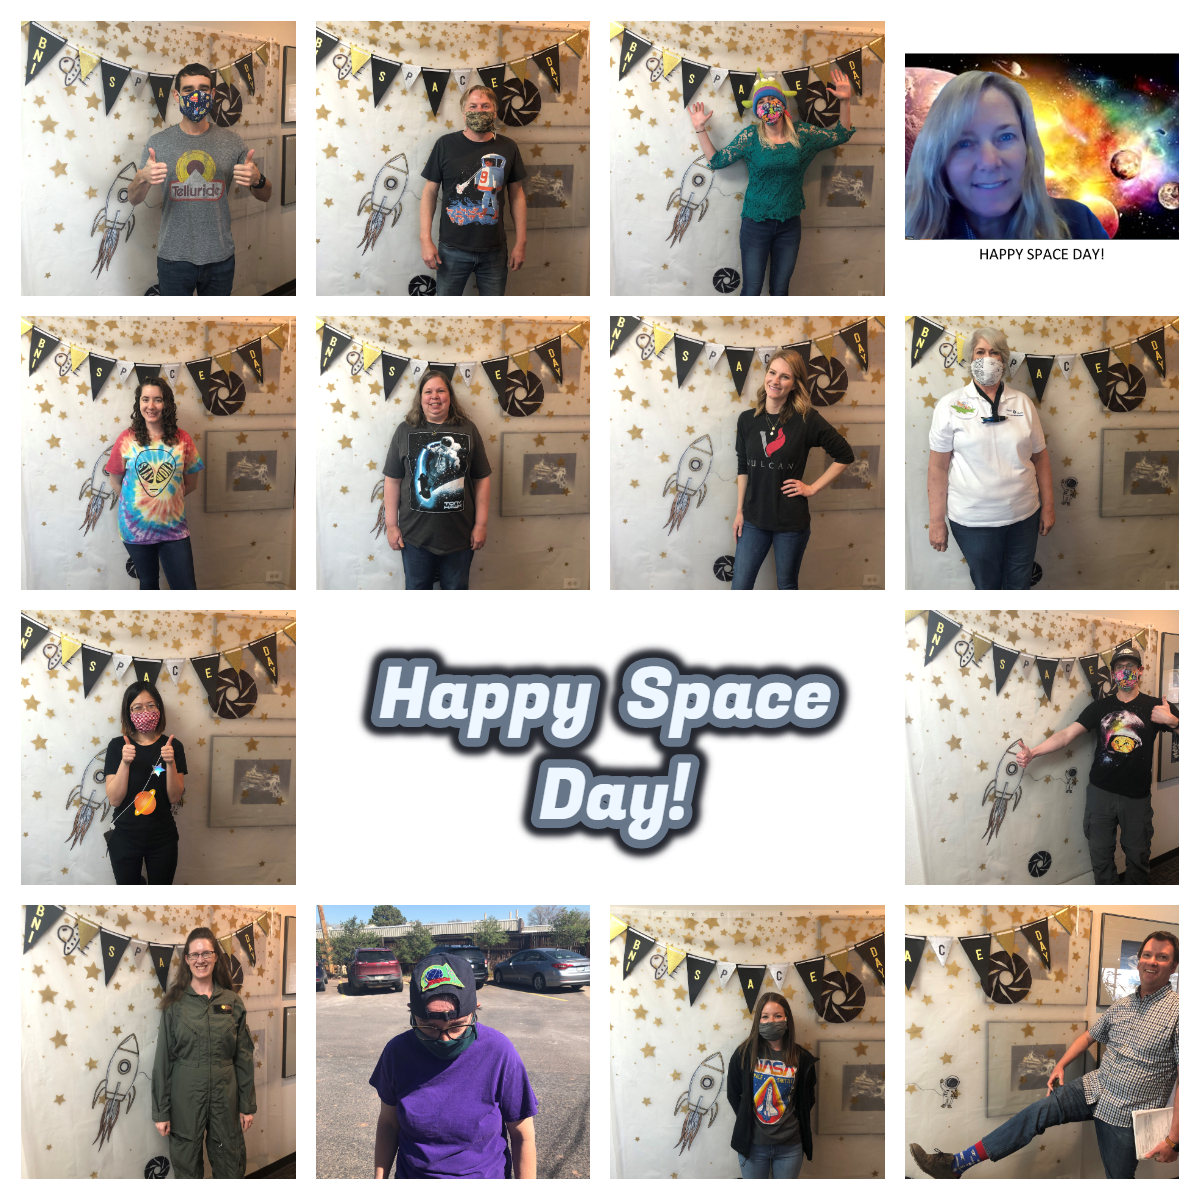 Space Day